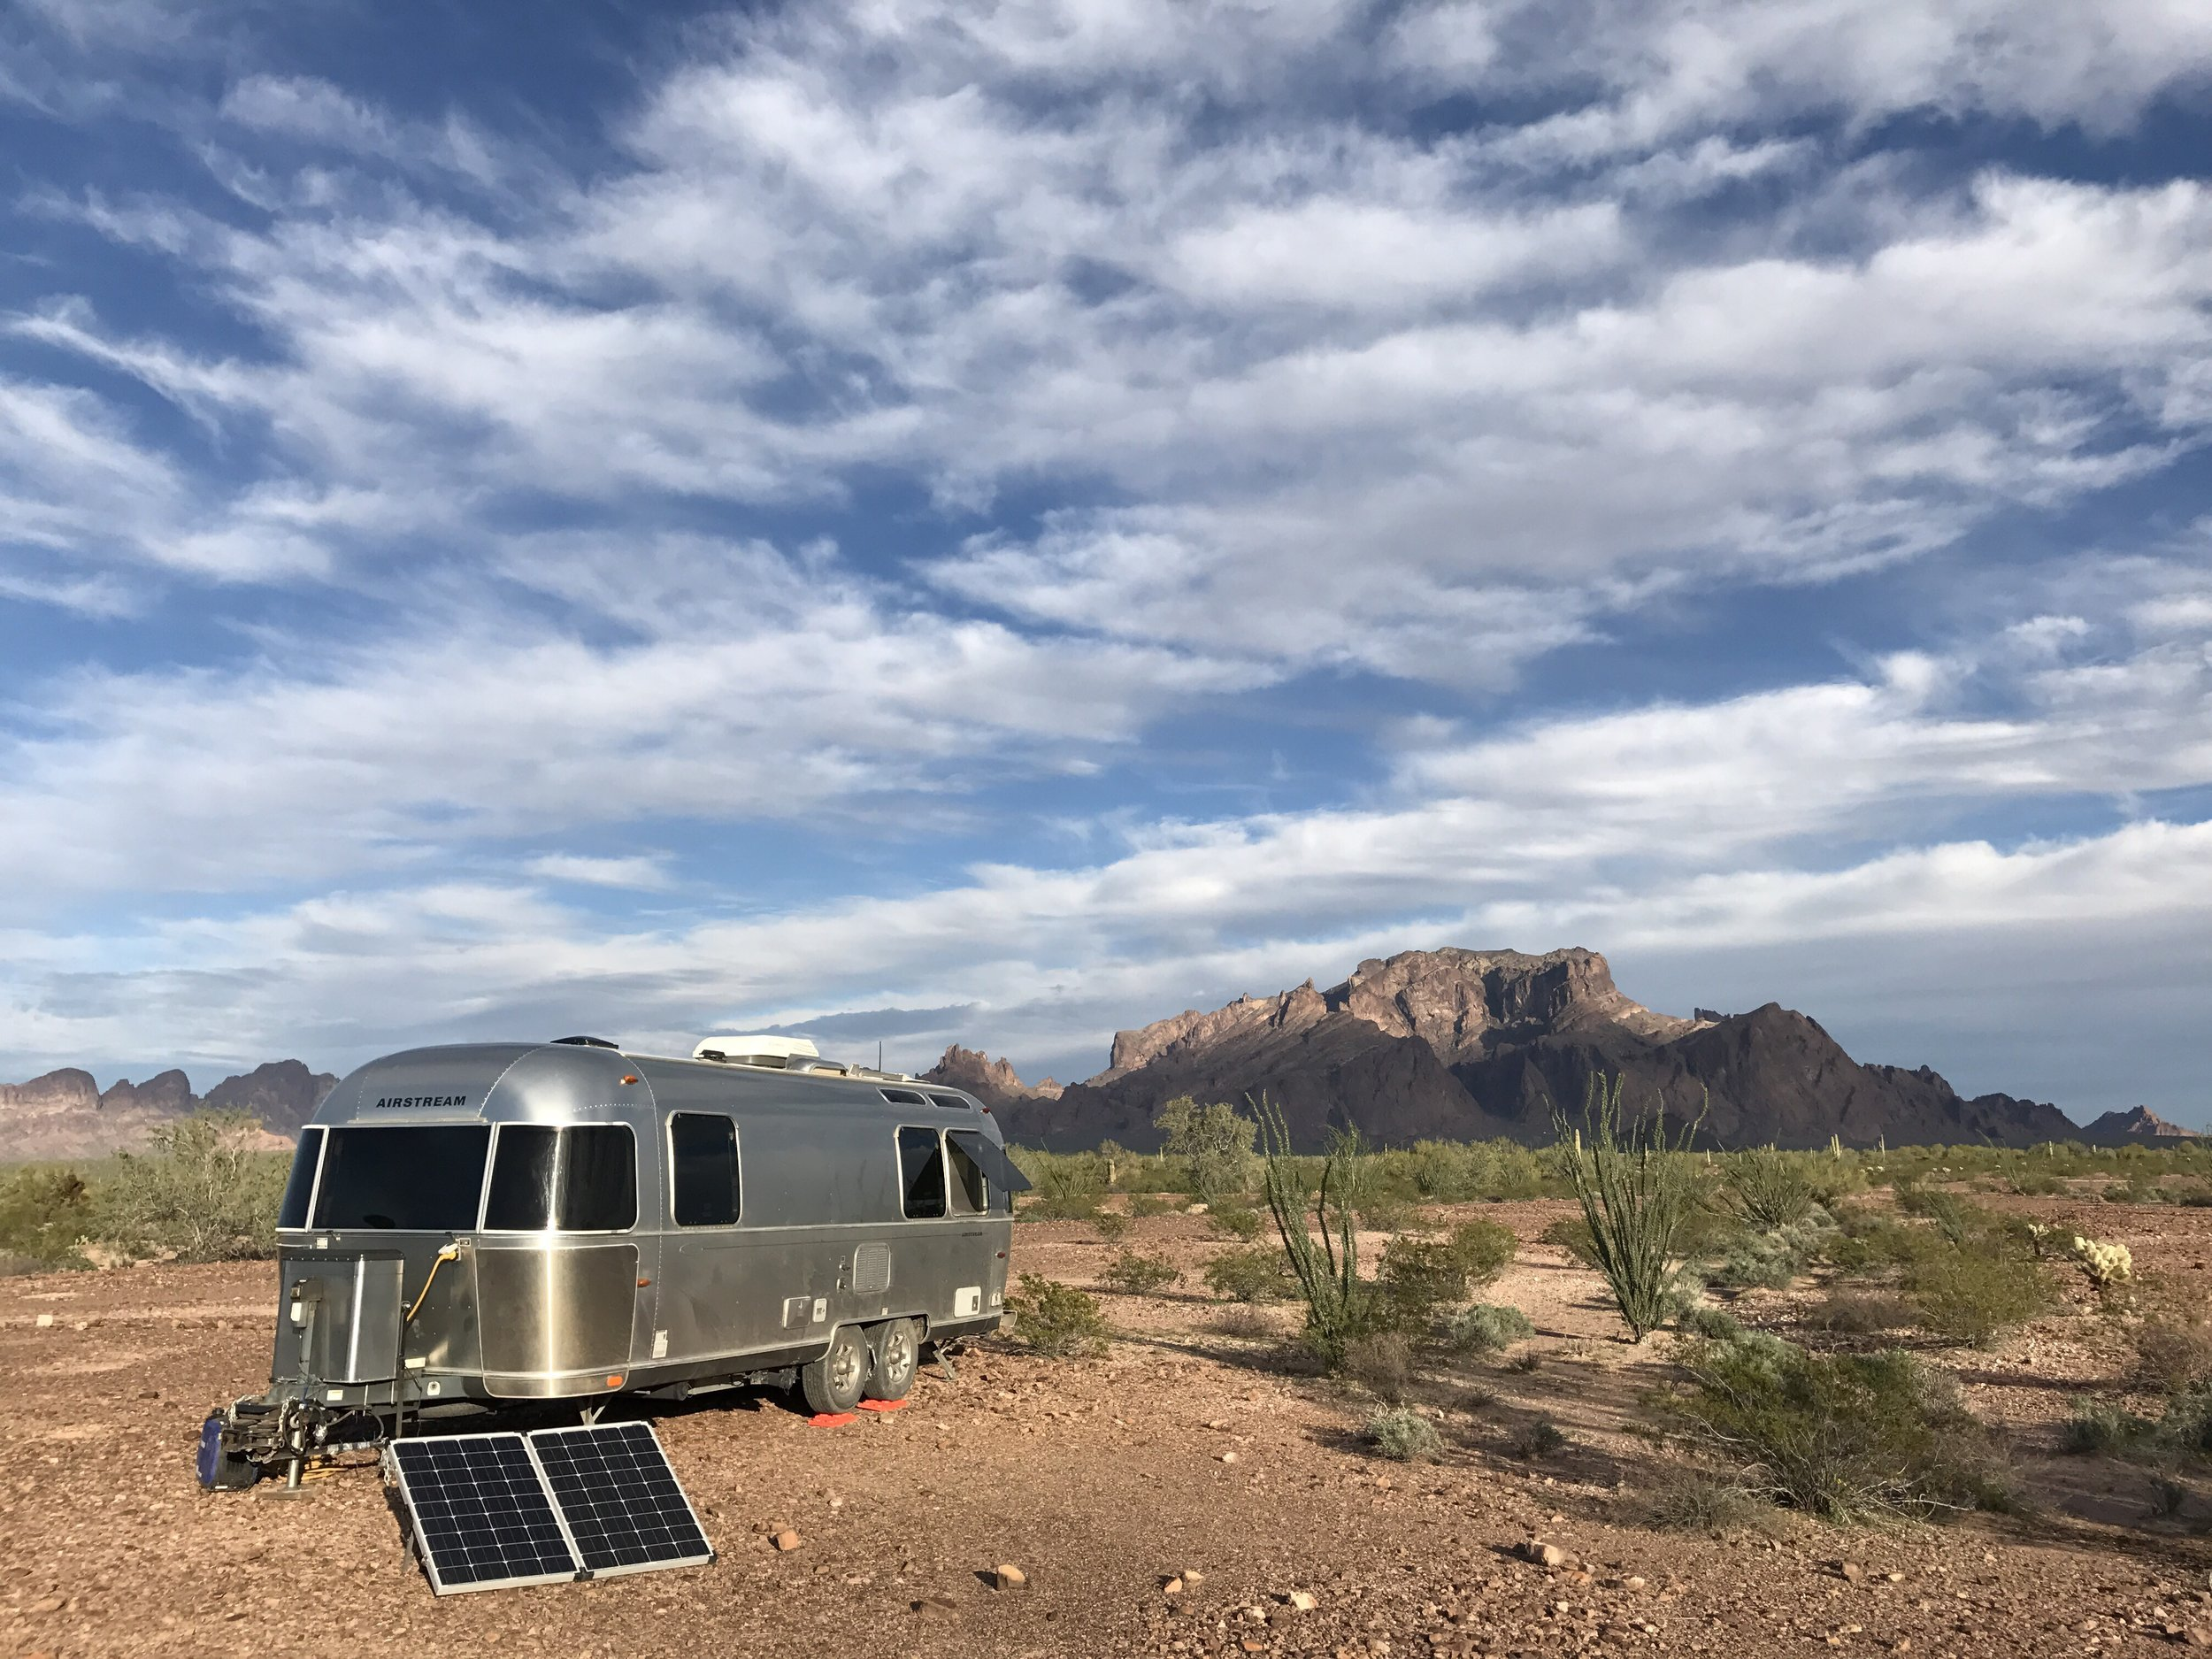 hight resolution of 40 things we would change on our airstream trailer nature photo guides